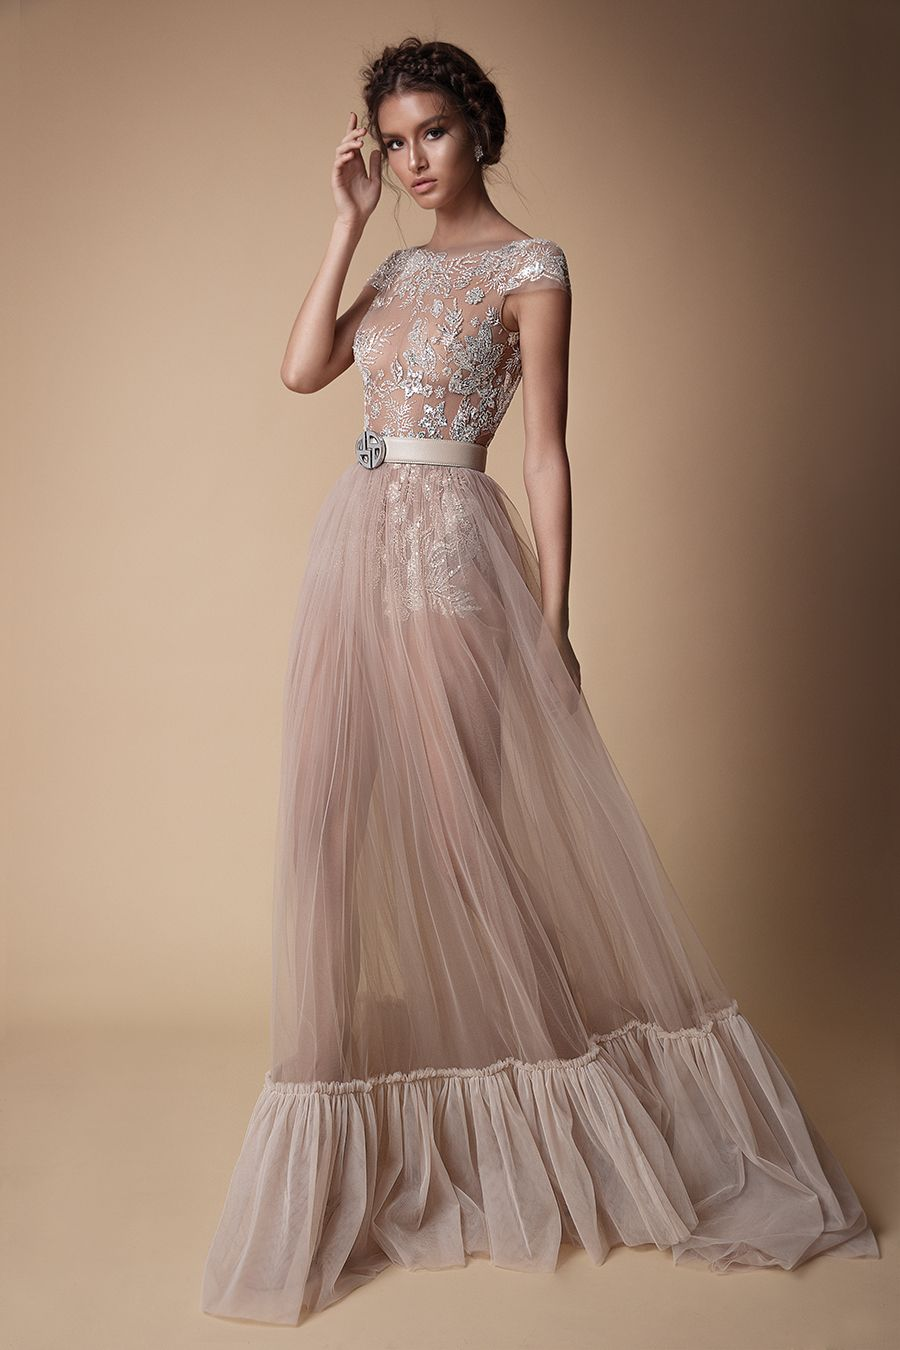 Berta evening dress collection dress collection ball gowns